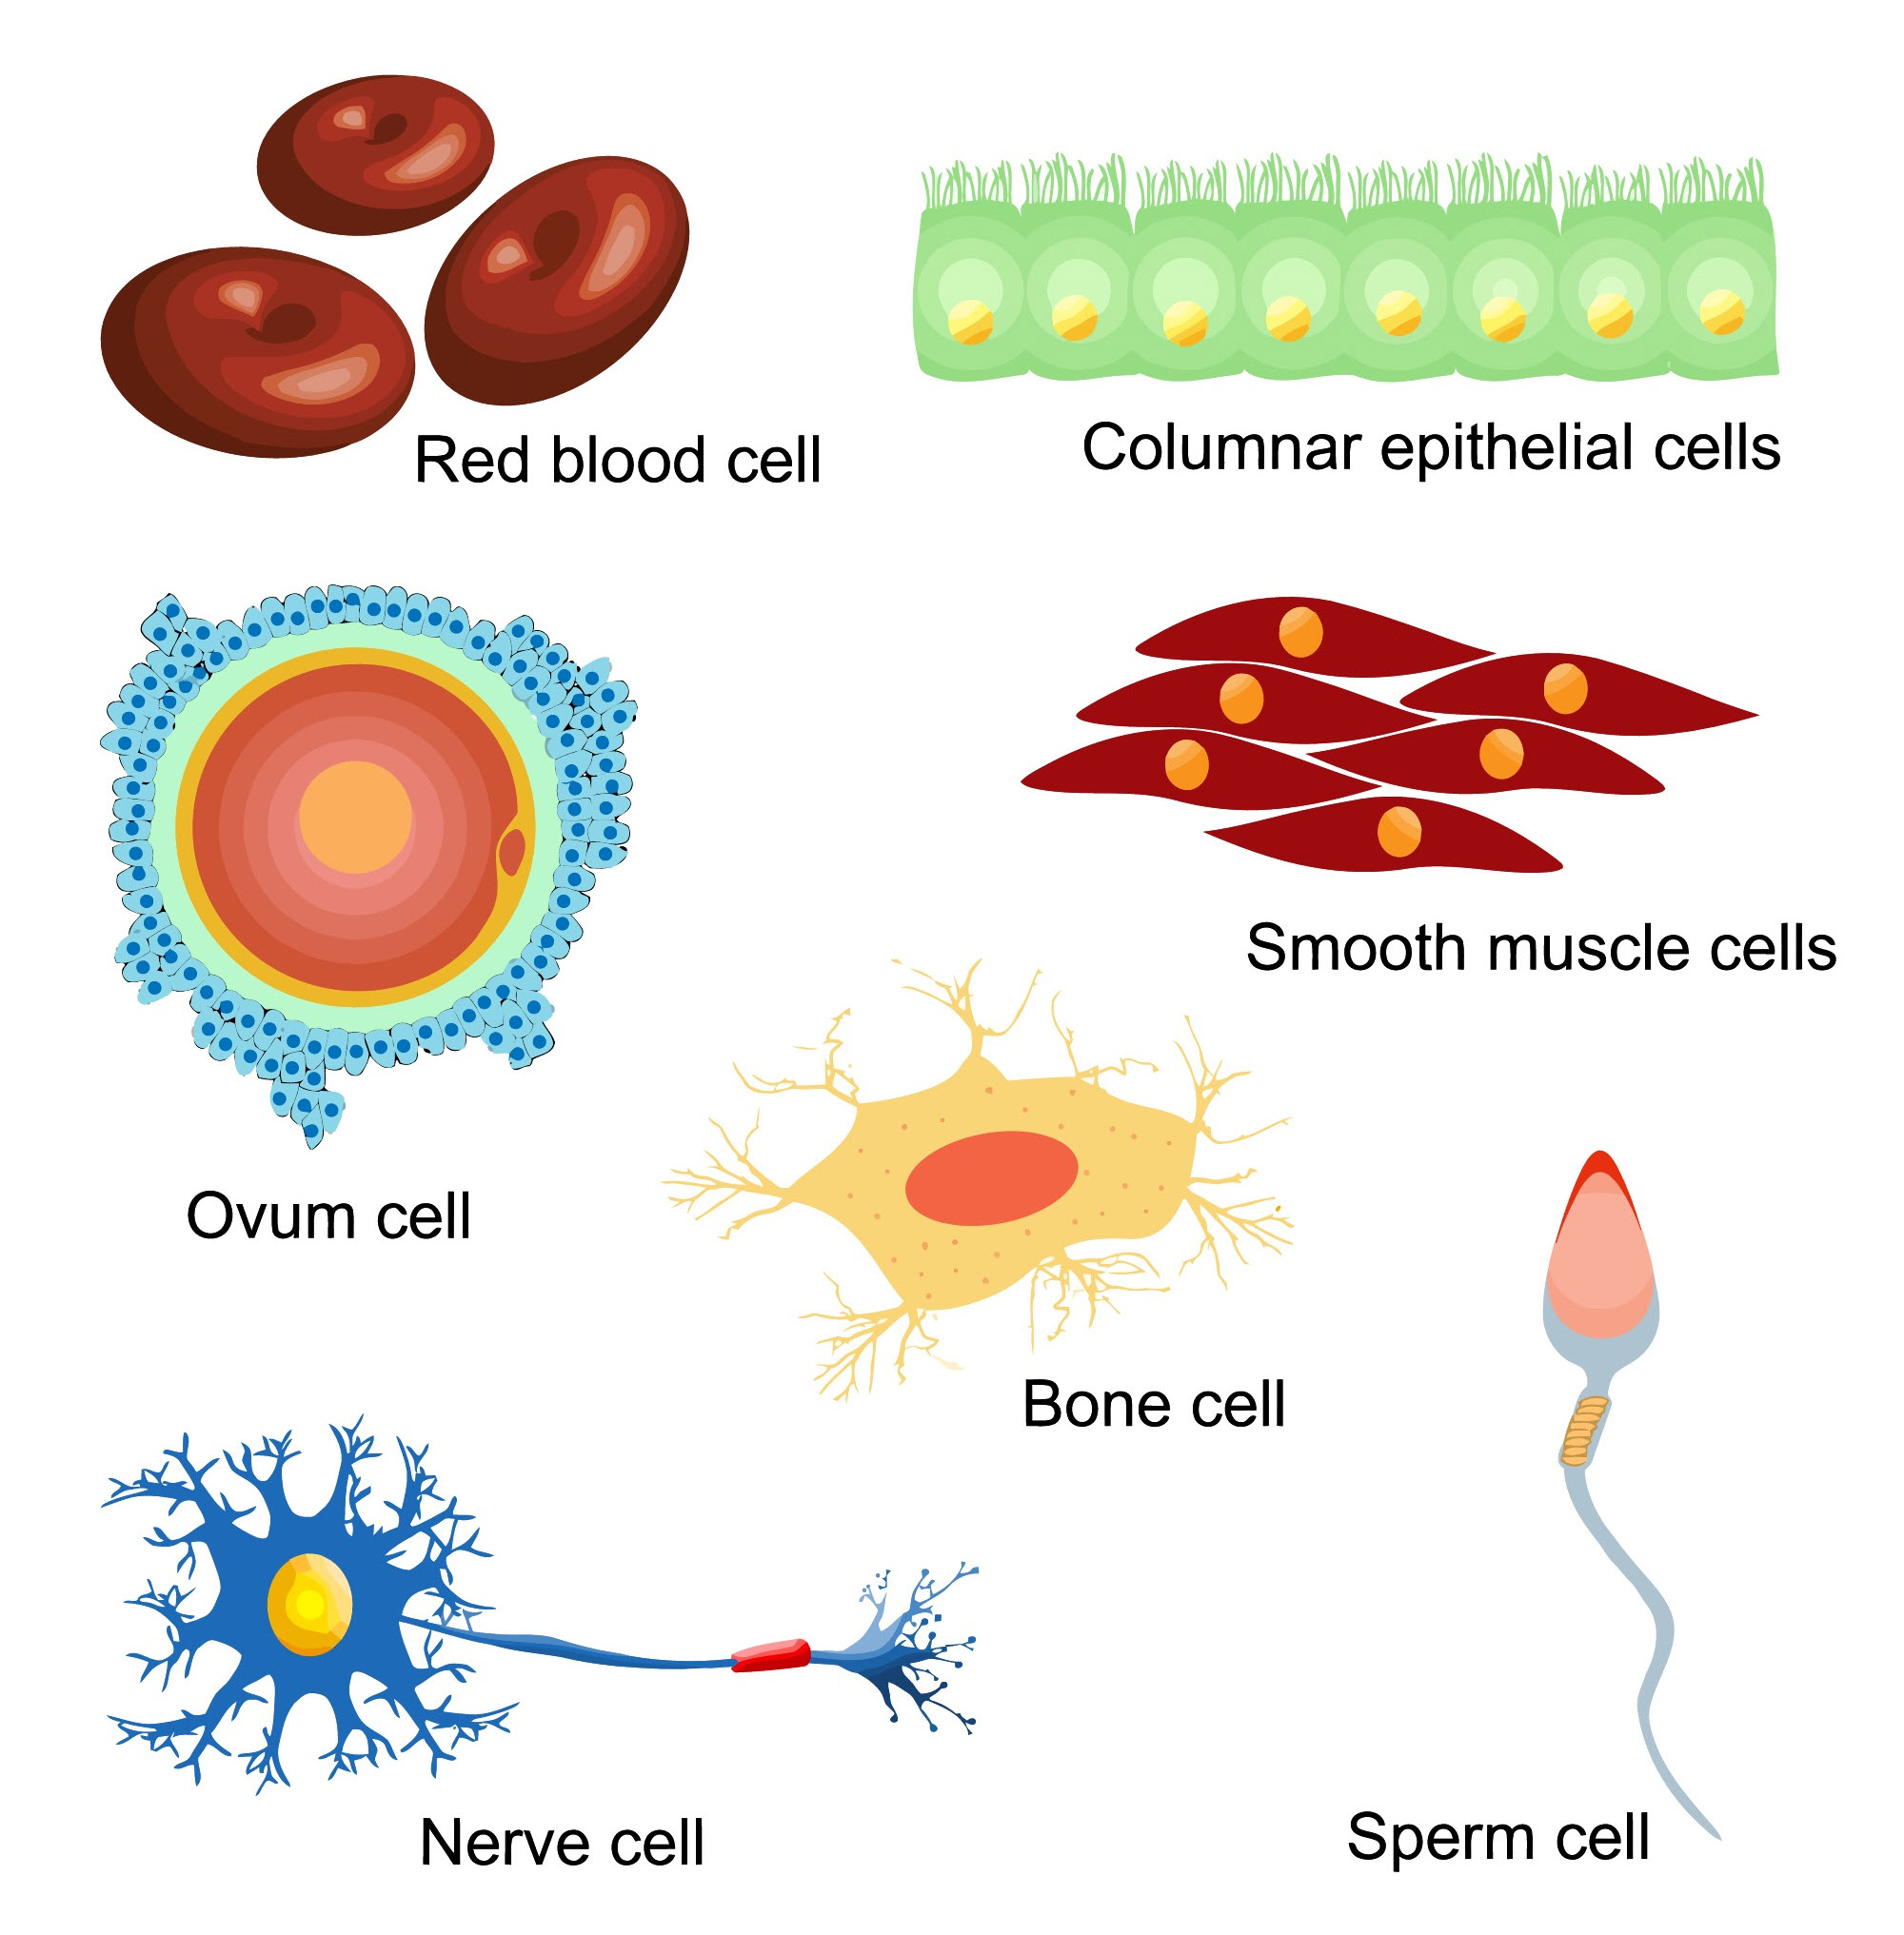 An image showing different types of cells